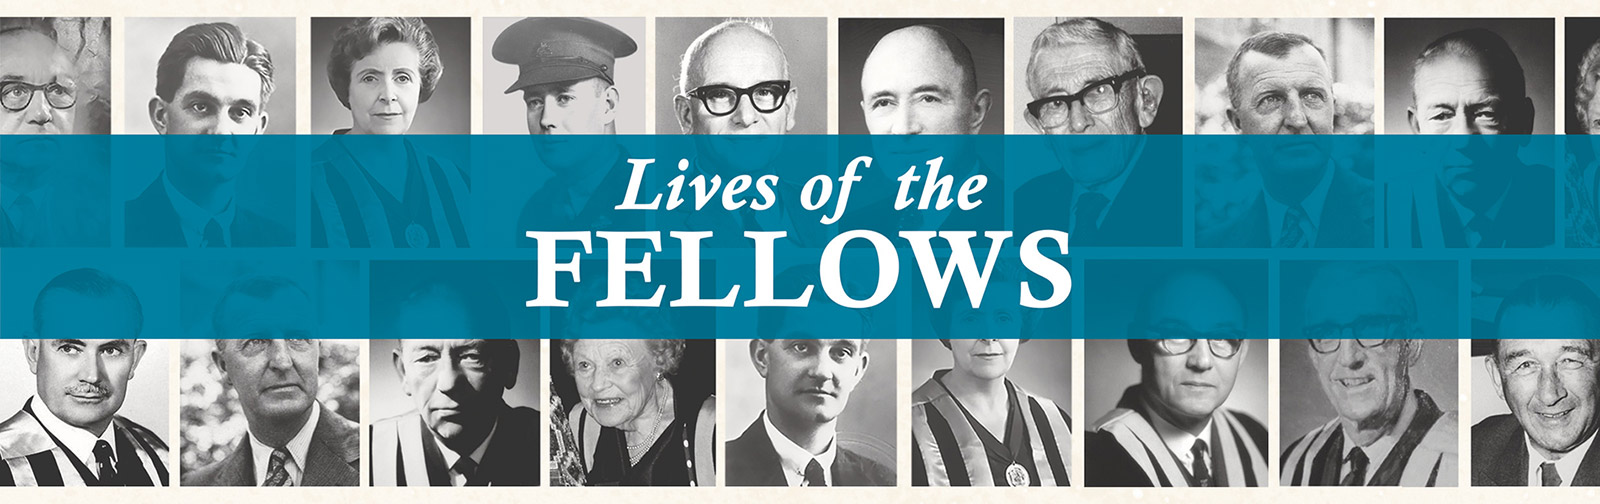 Lives of the Fellows Online Exhibition